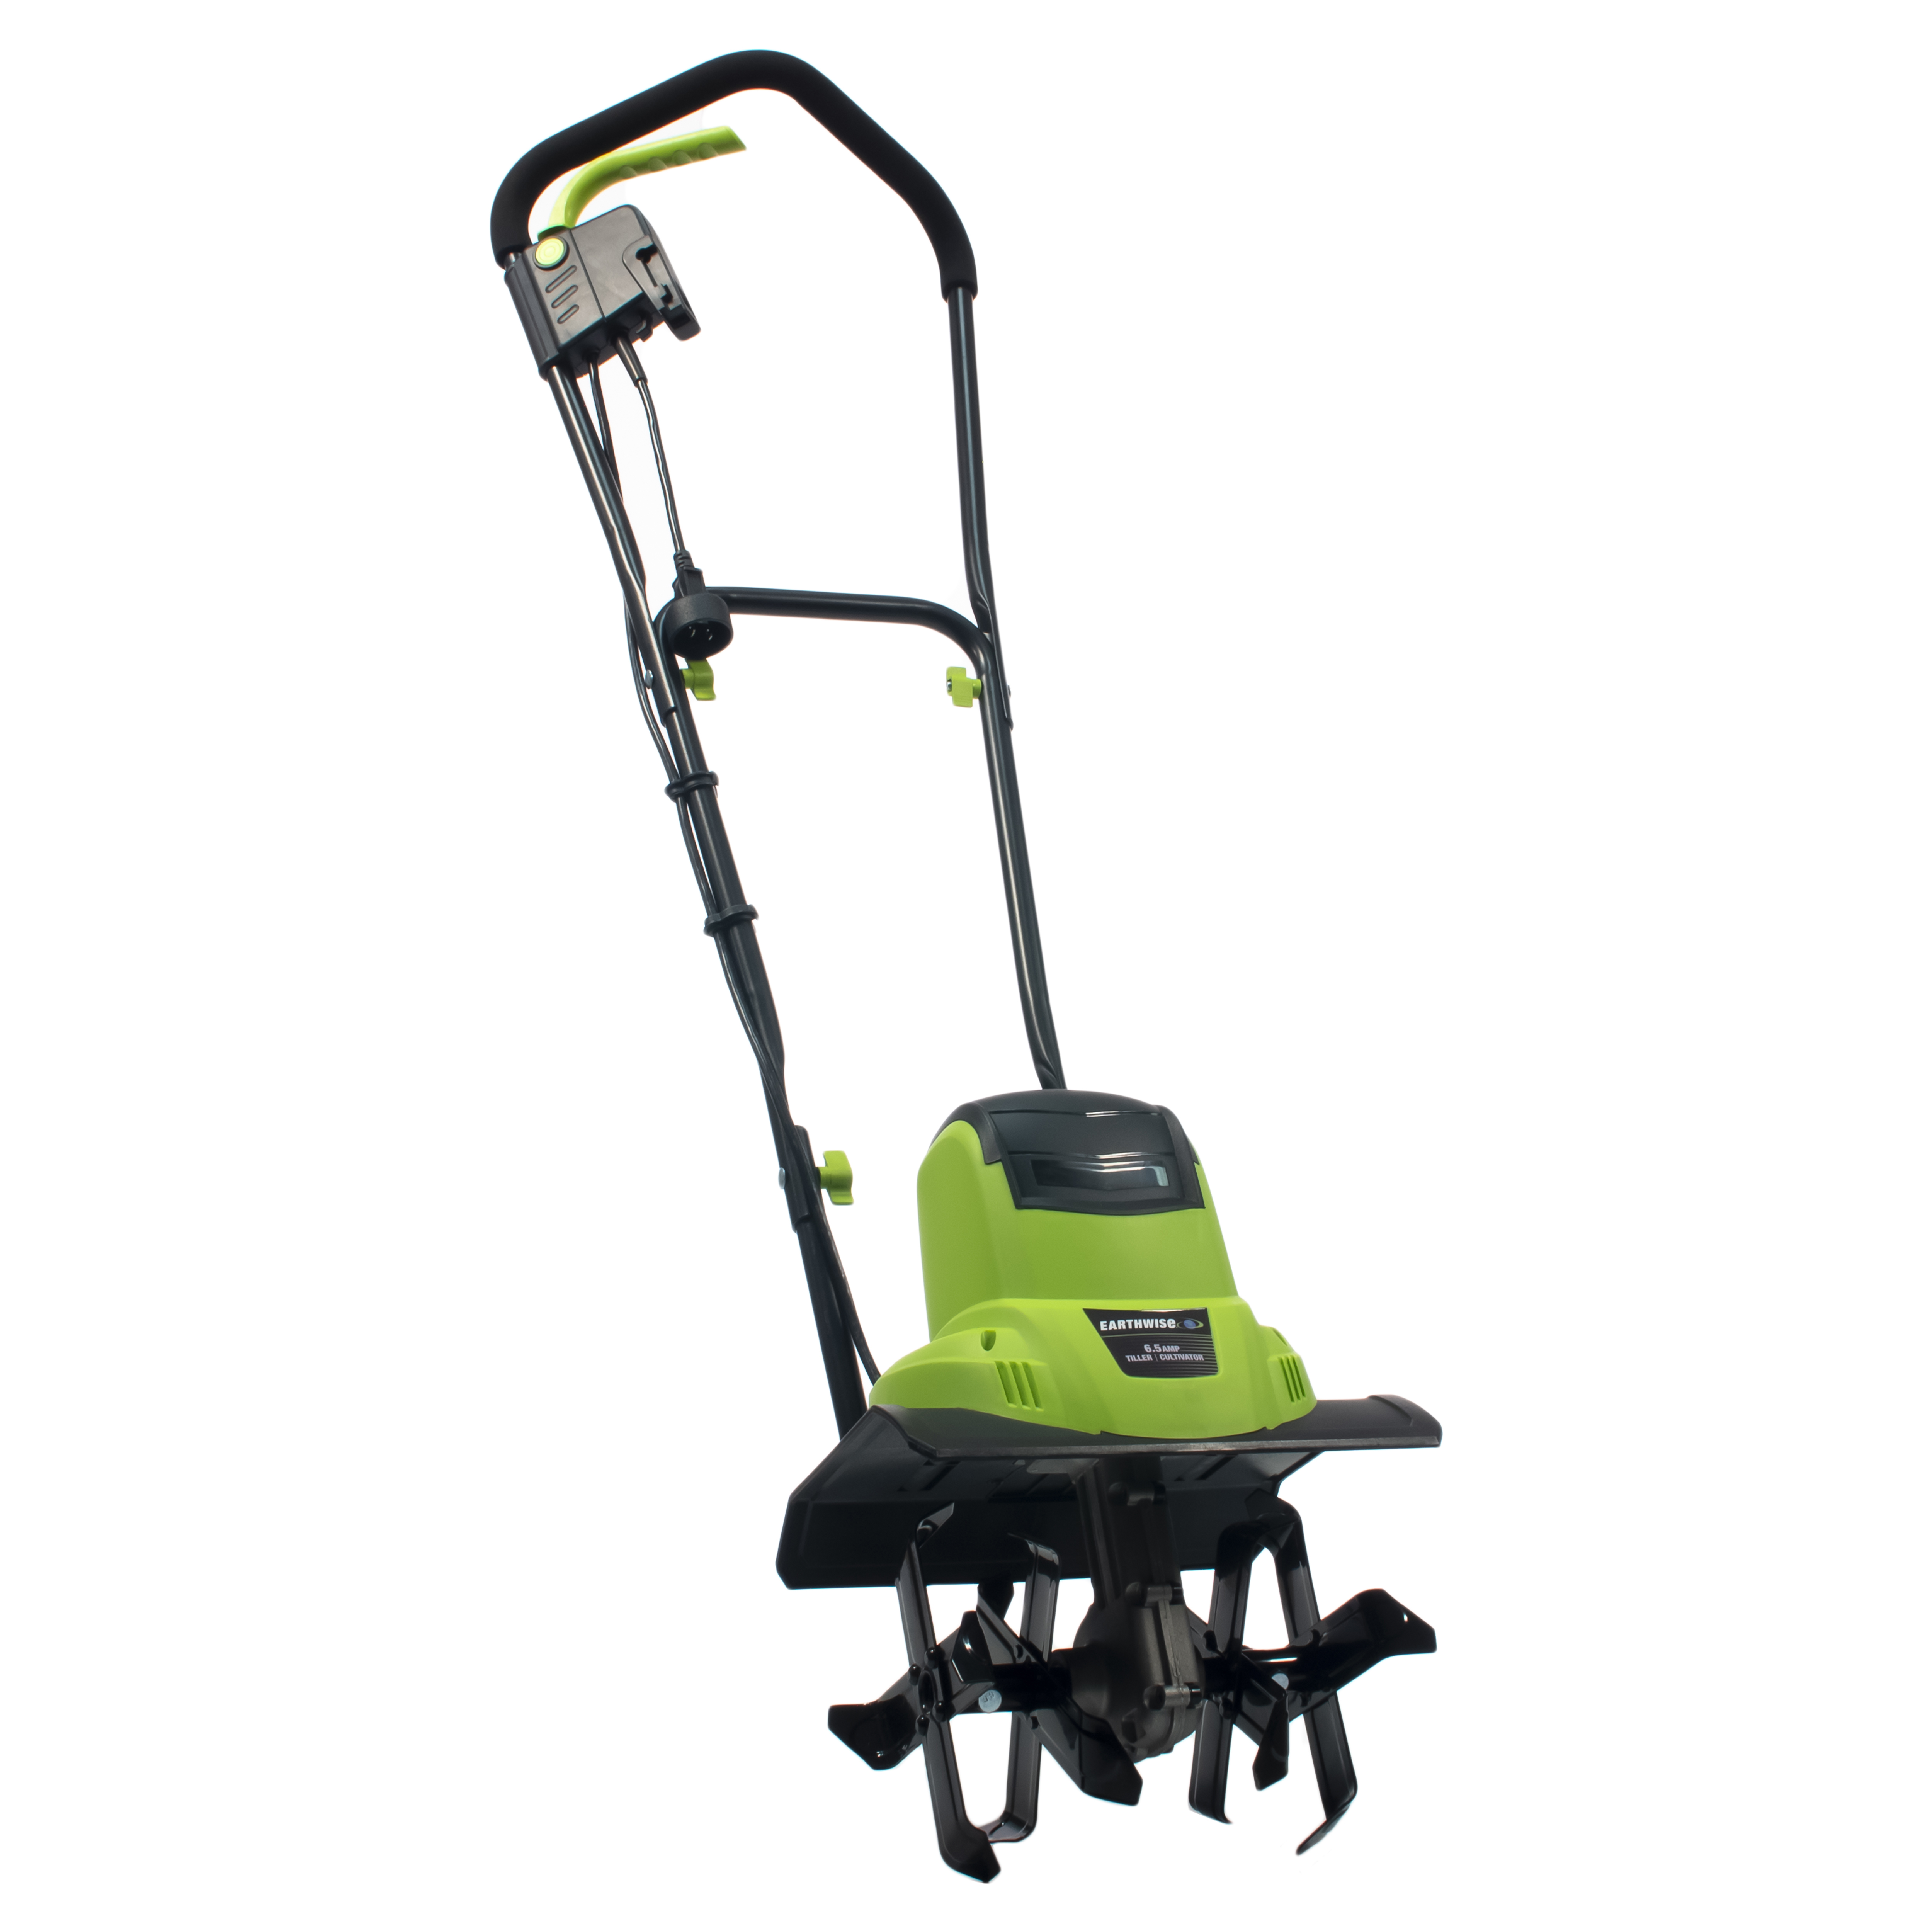 Earthwise TC70065 6.5 Amp Corded Electric Tiller Cultivator